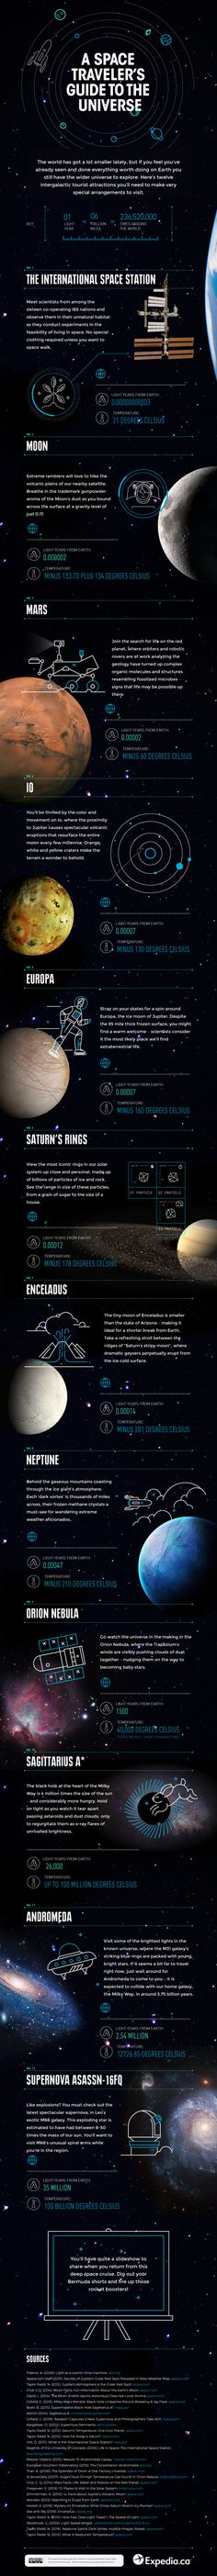 Intergalactic Attractions Every Space Tourist Must Visit Infographic. Topic: universe, astronomy, sun, moon, mars, earth, planet, blackhole, space tourism, travel.